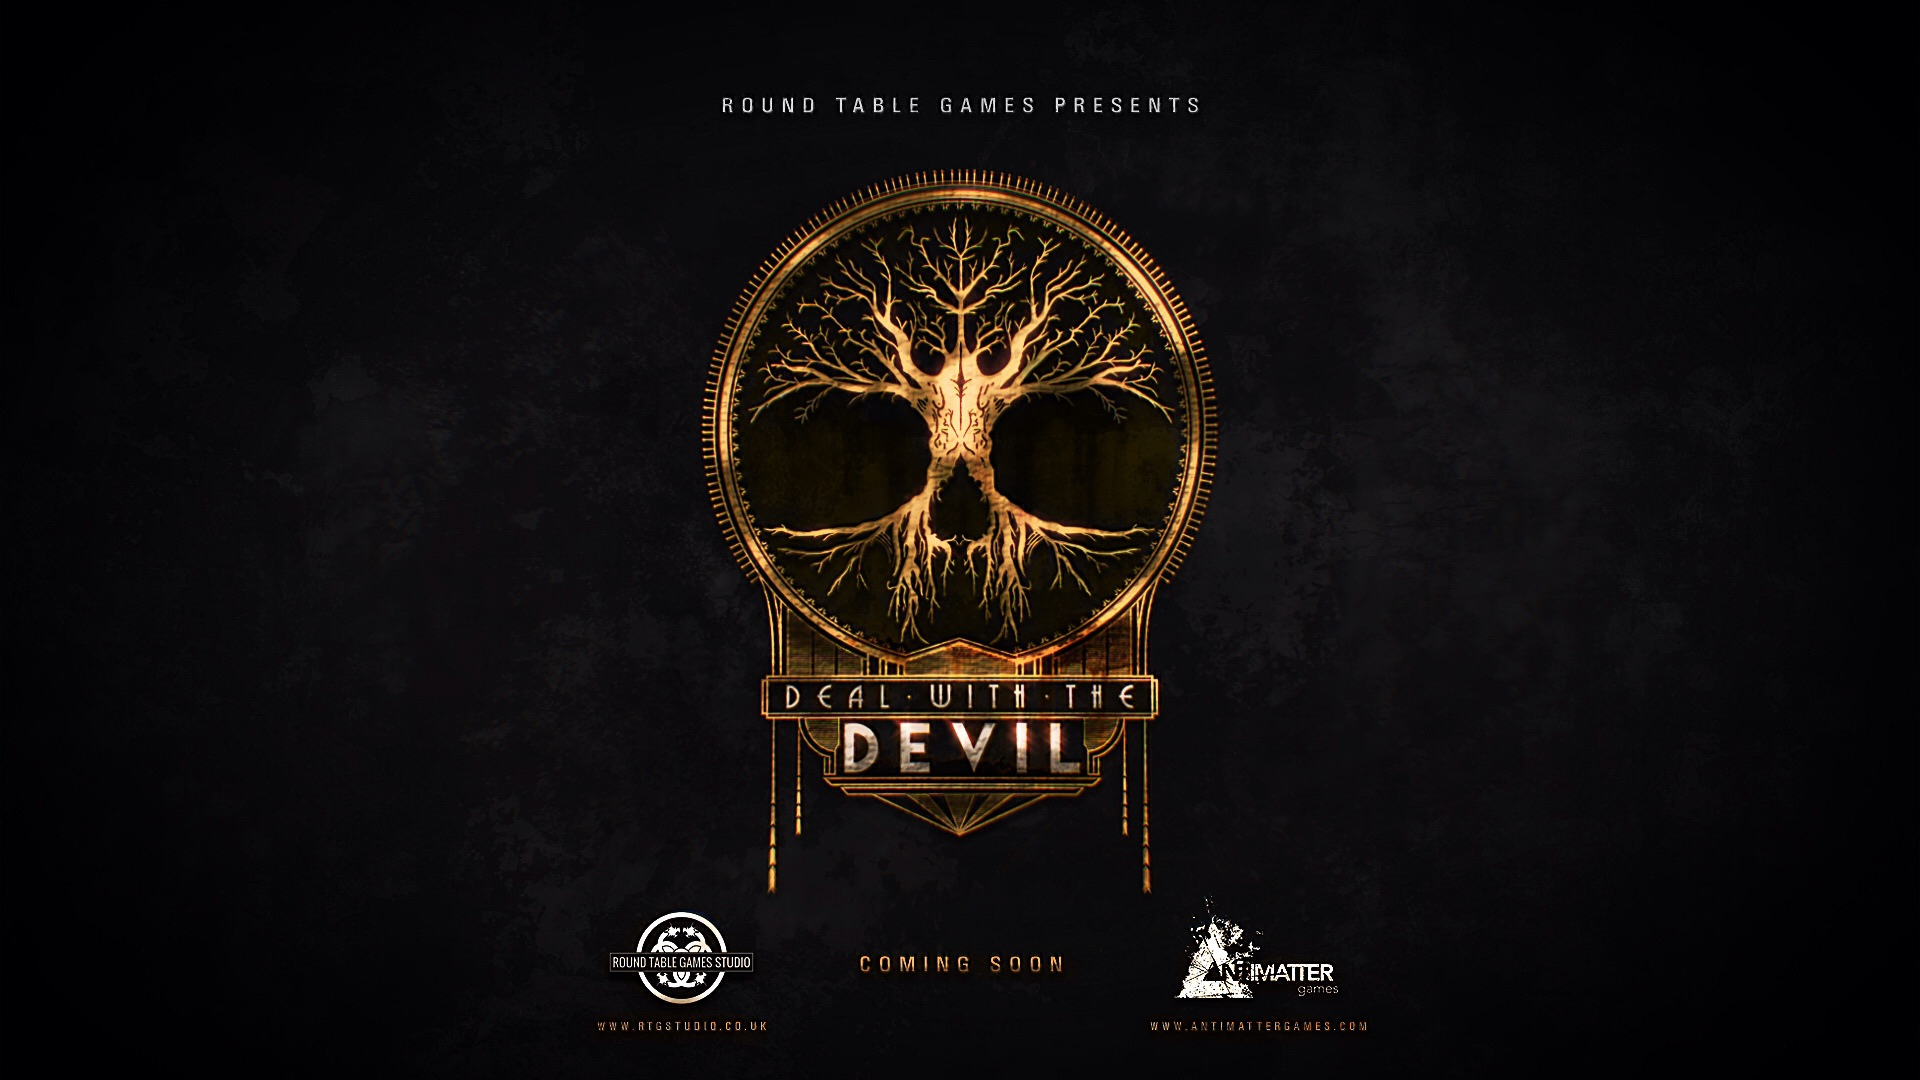 Round Table Games Makes a 'Deal With the Devil' - Bloody